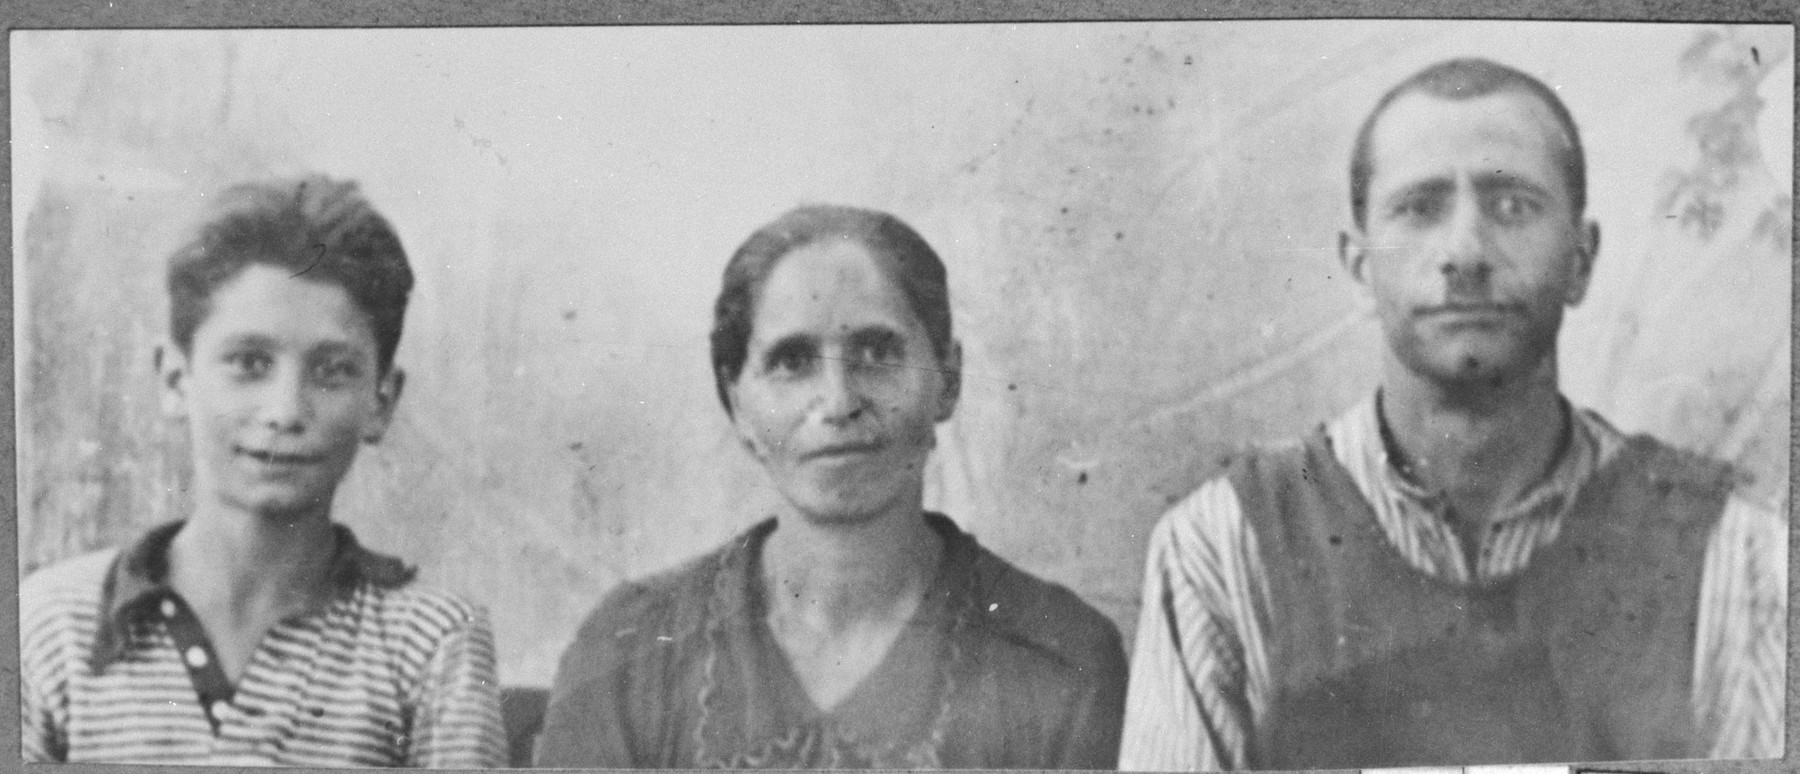 Portrait of Mois Mishulam, [Mois' wife], Sol, and Mois' son Haim.  They lived at Sinagogina 3 in Bitola.